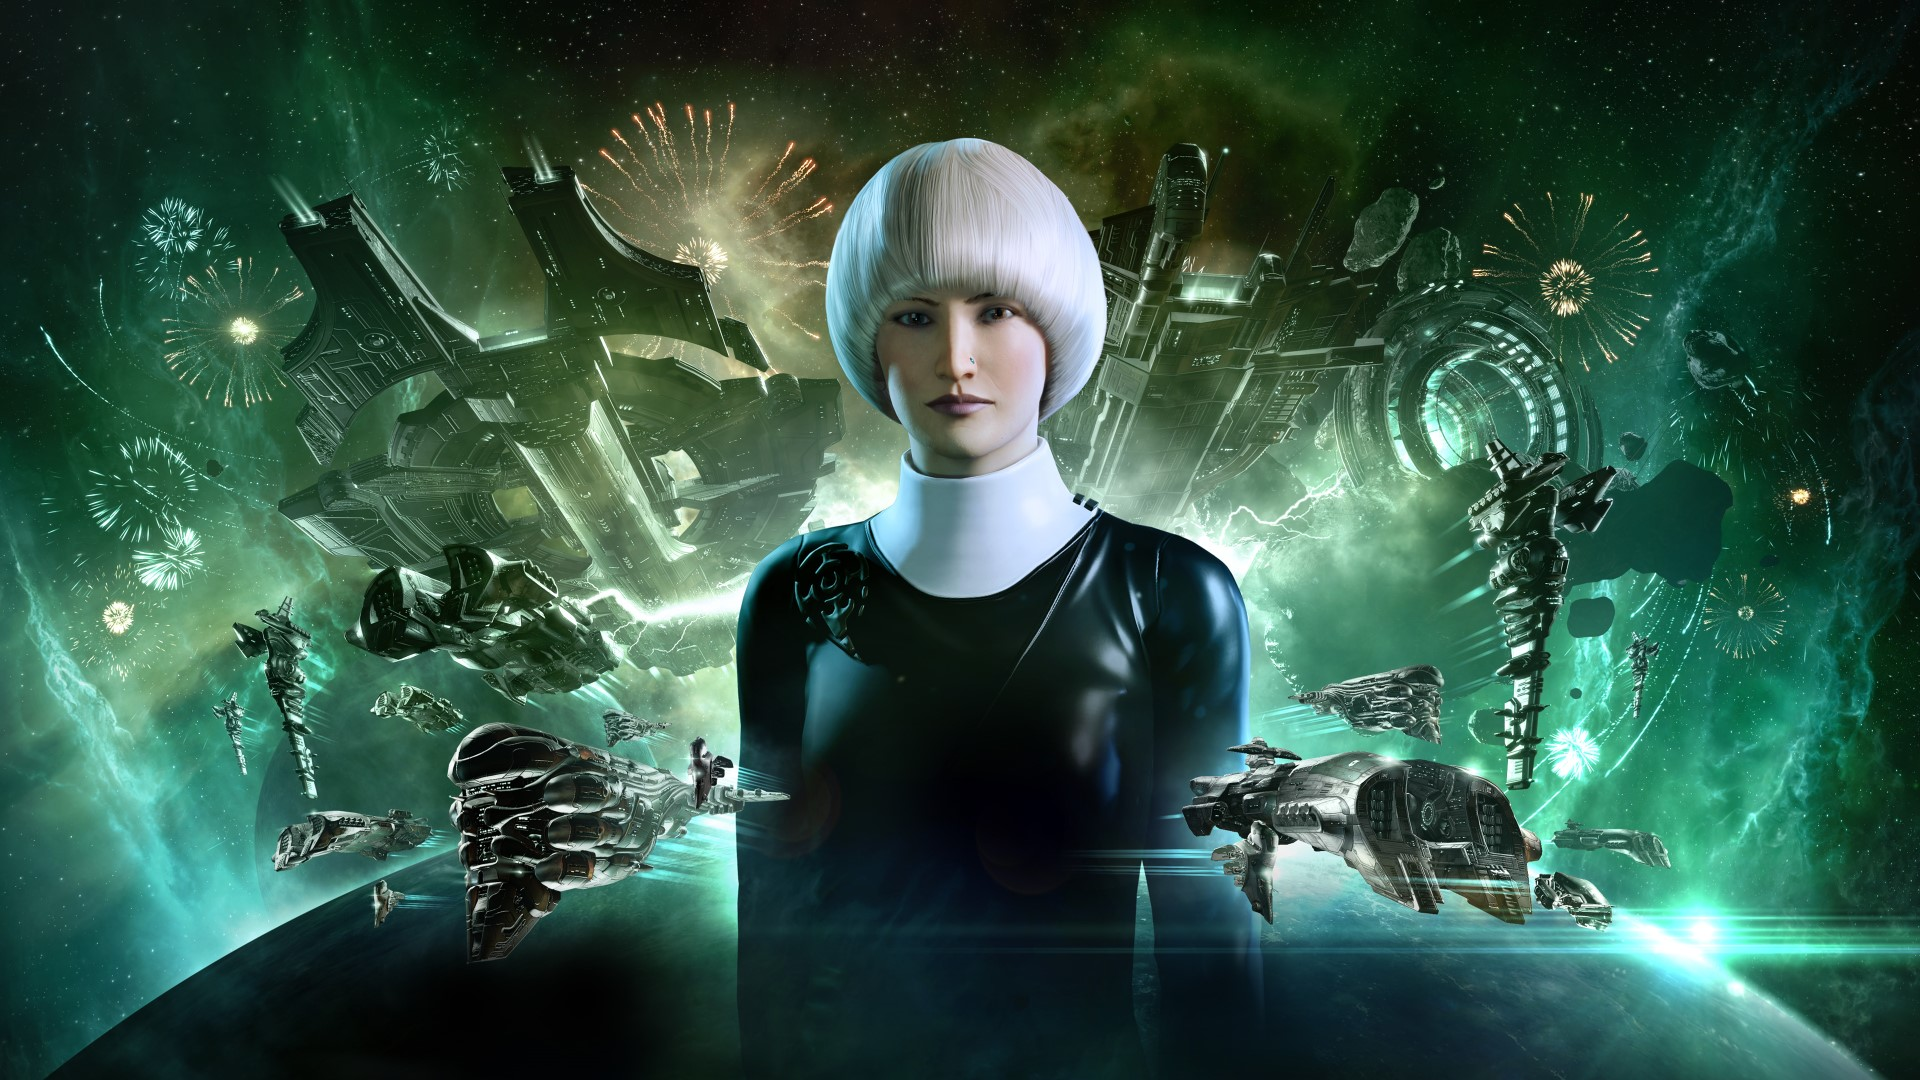 Eve Online officially marks Federation Day with login bonuses, parades, and more